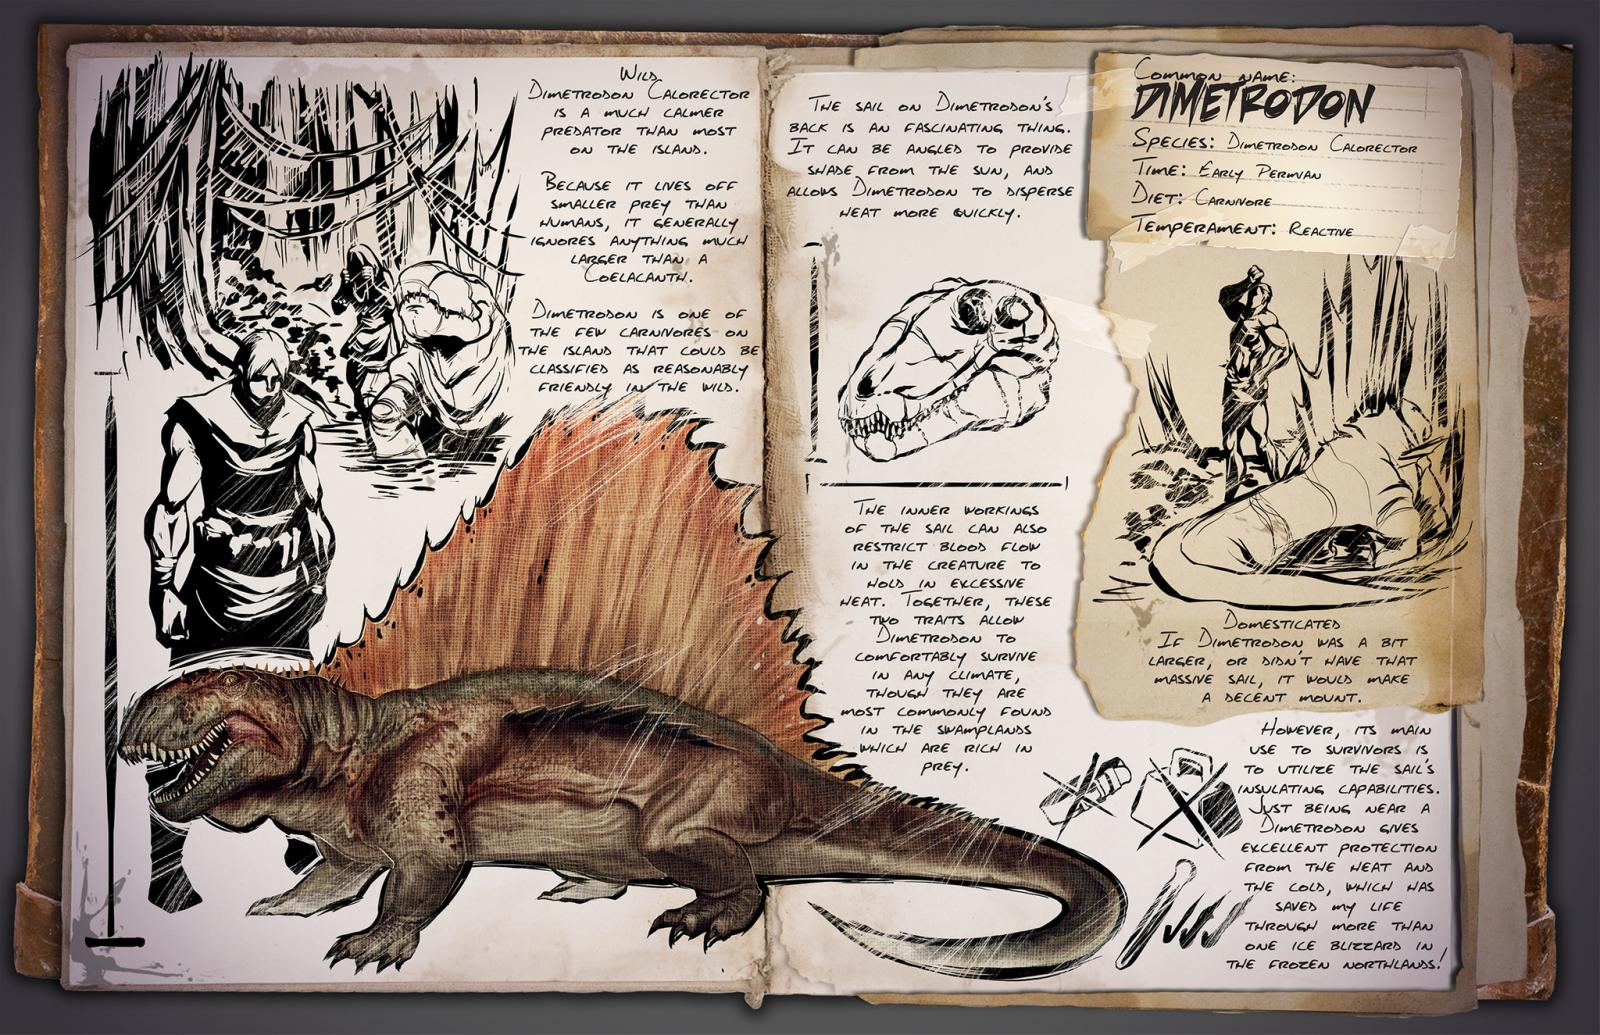 Ark Survival Evolved - Dimetrodon Info